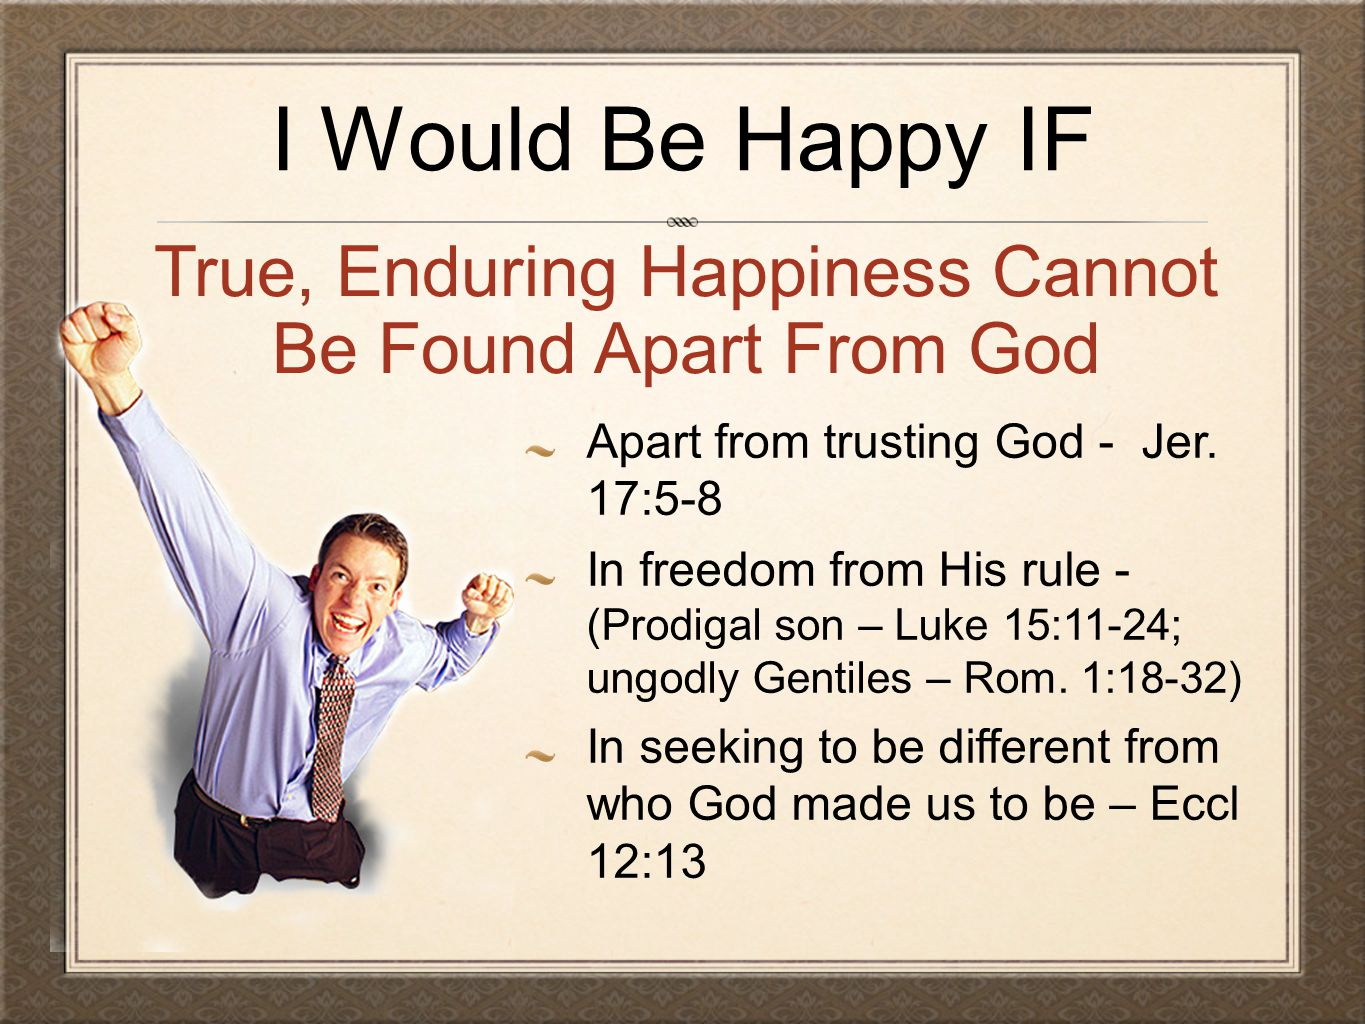 I Would Be Happy IF Apart from trusting God - Jer.